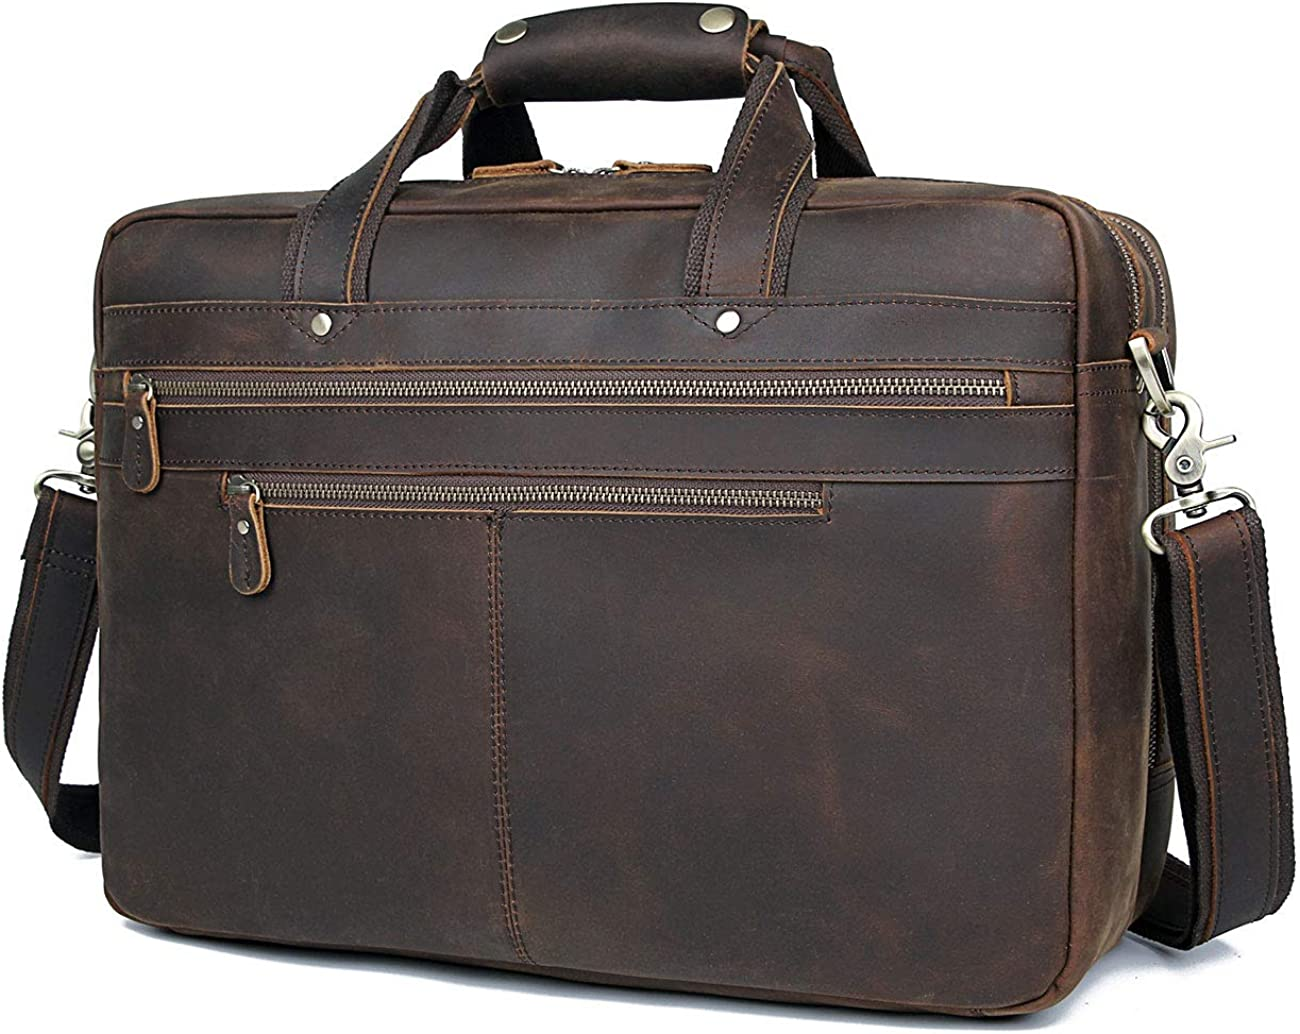 "Polare Soft Leather 17"" Laptop Case Professional Briefcase Business Bag For Men"